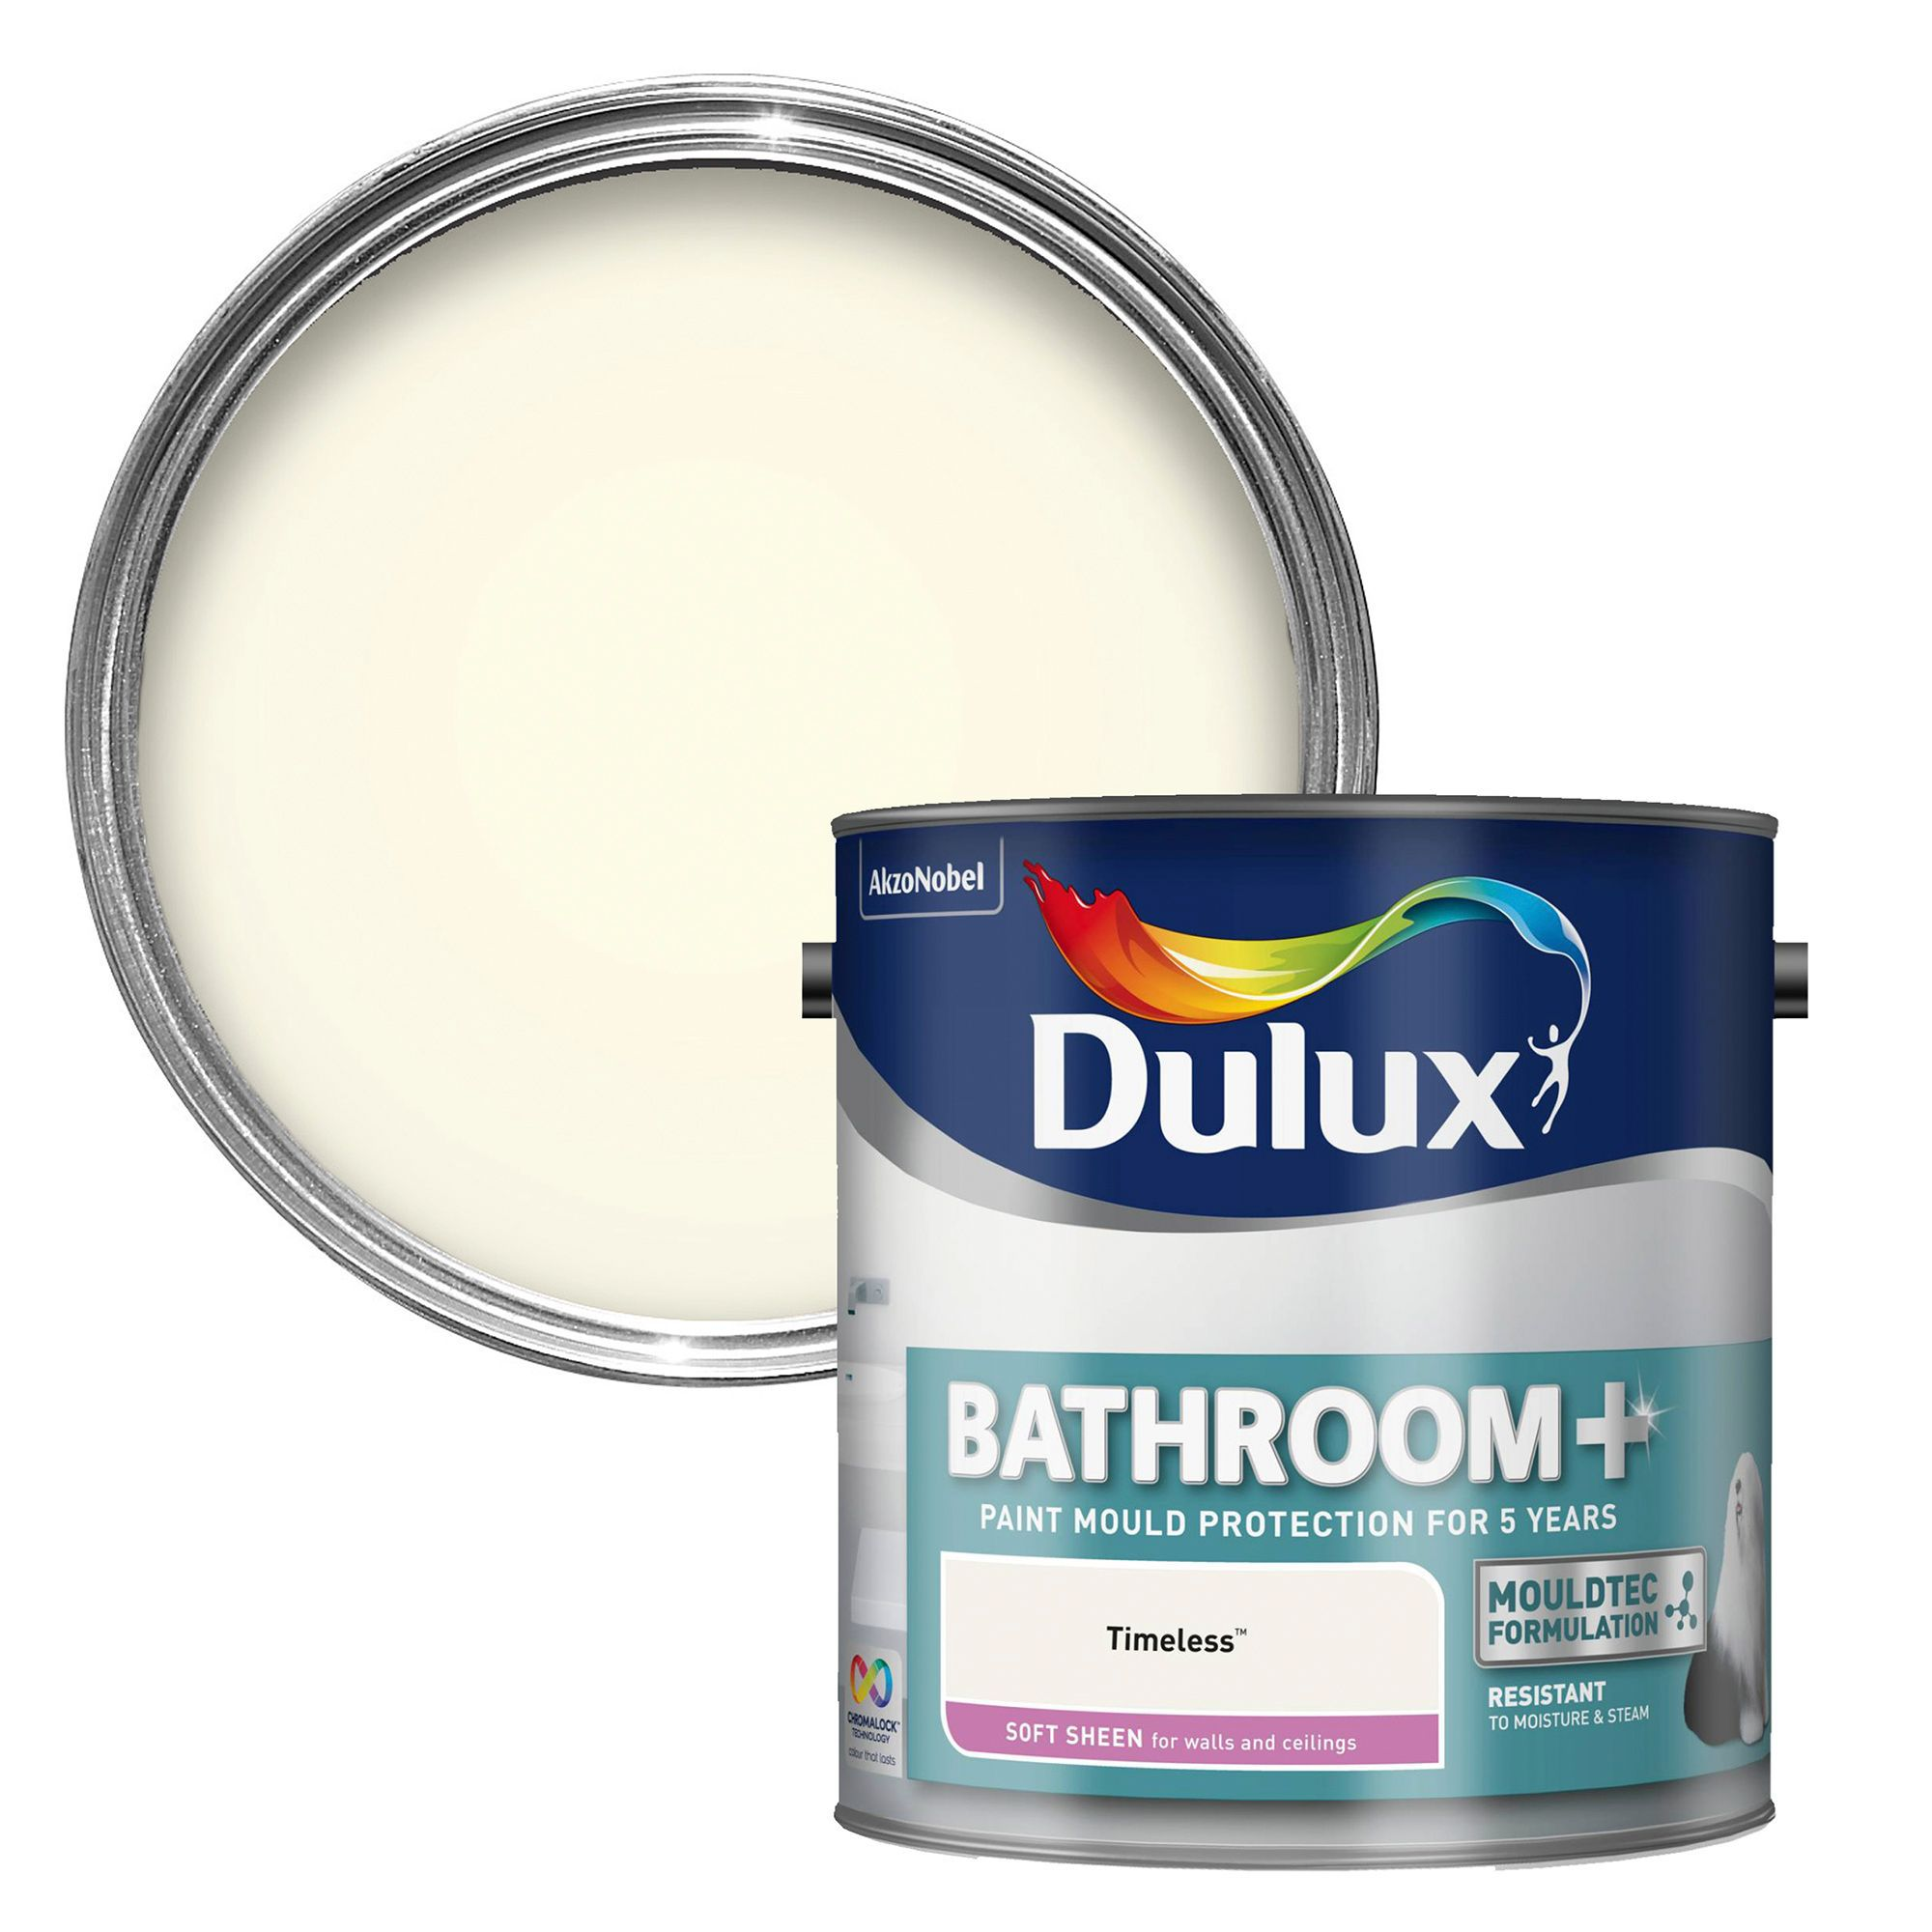 dulux stain resistant wall paint diy. Black Bedroom Furniture Sets. Home Design Ideas